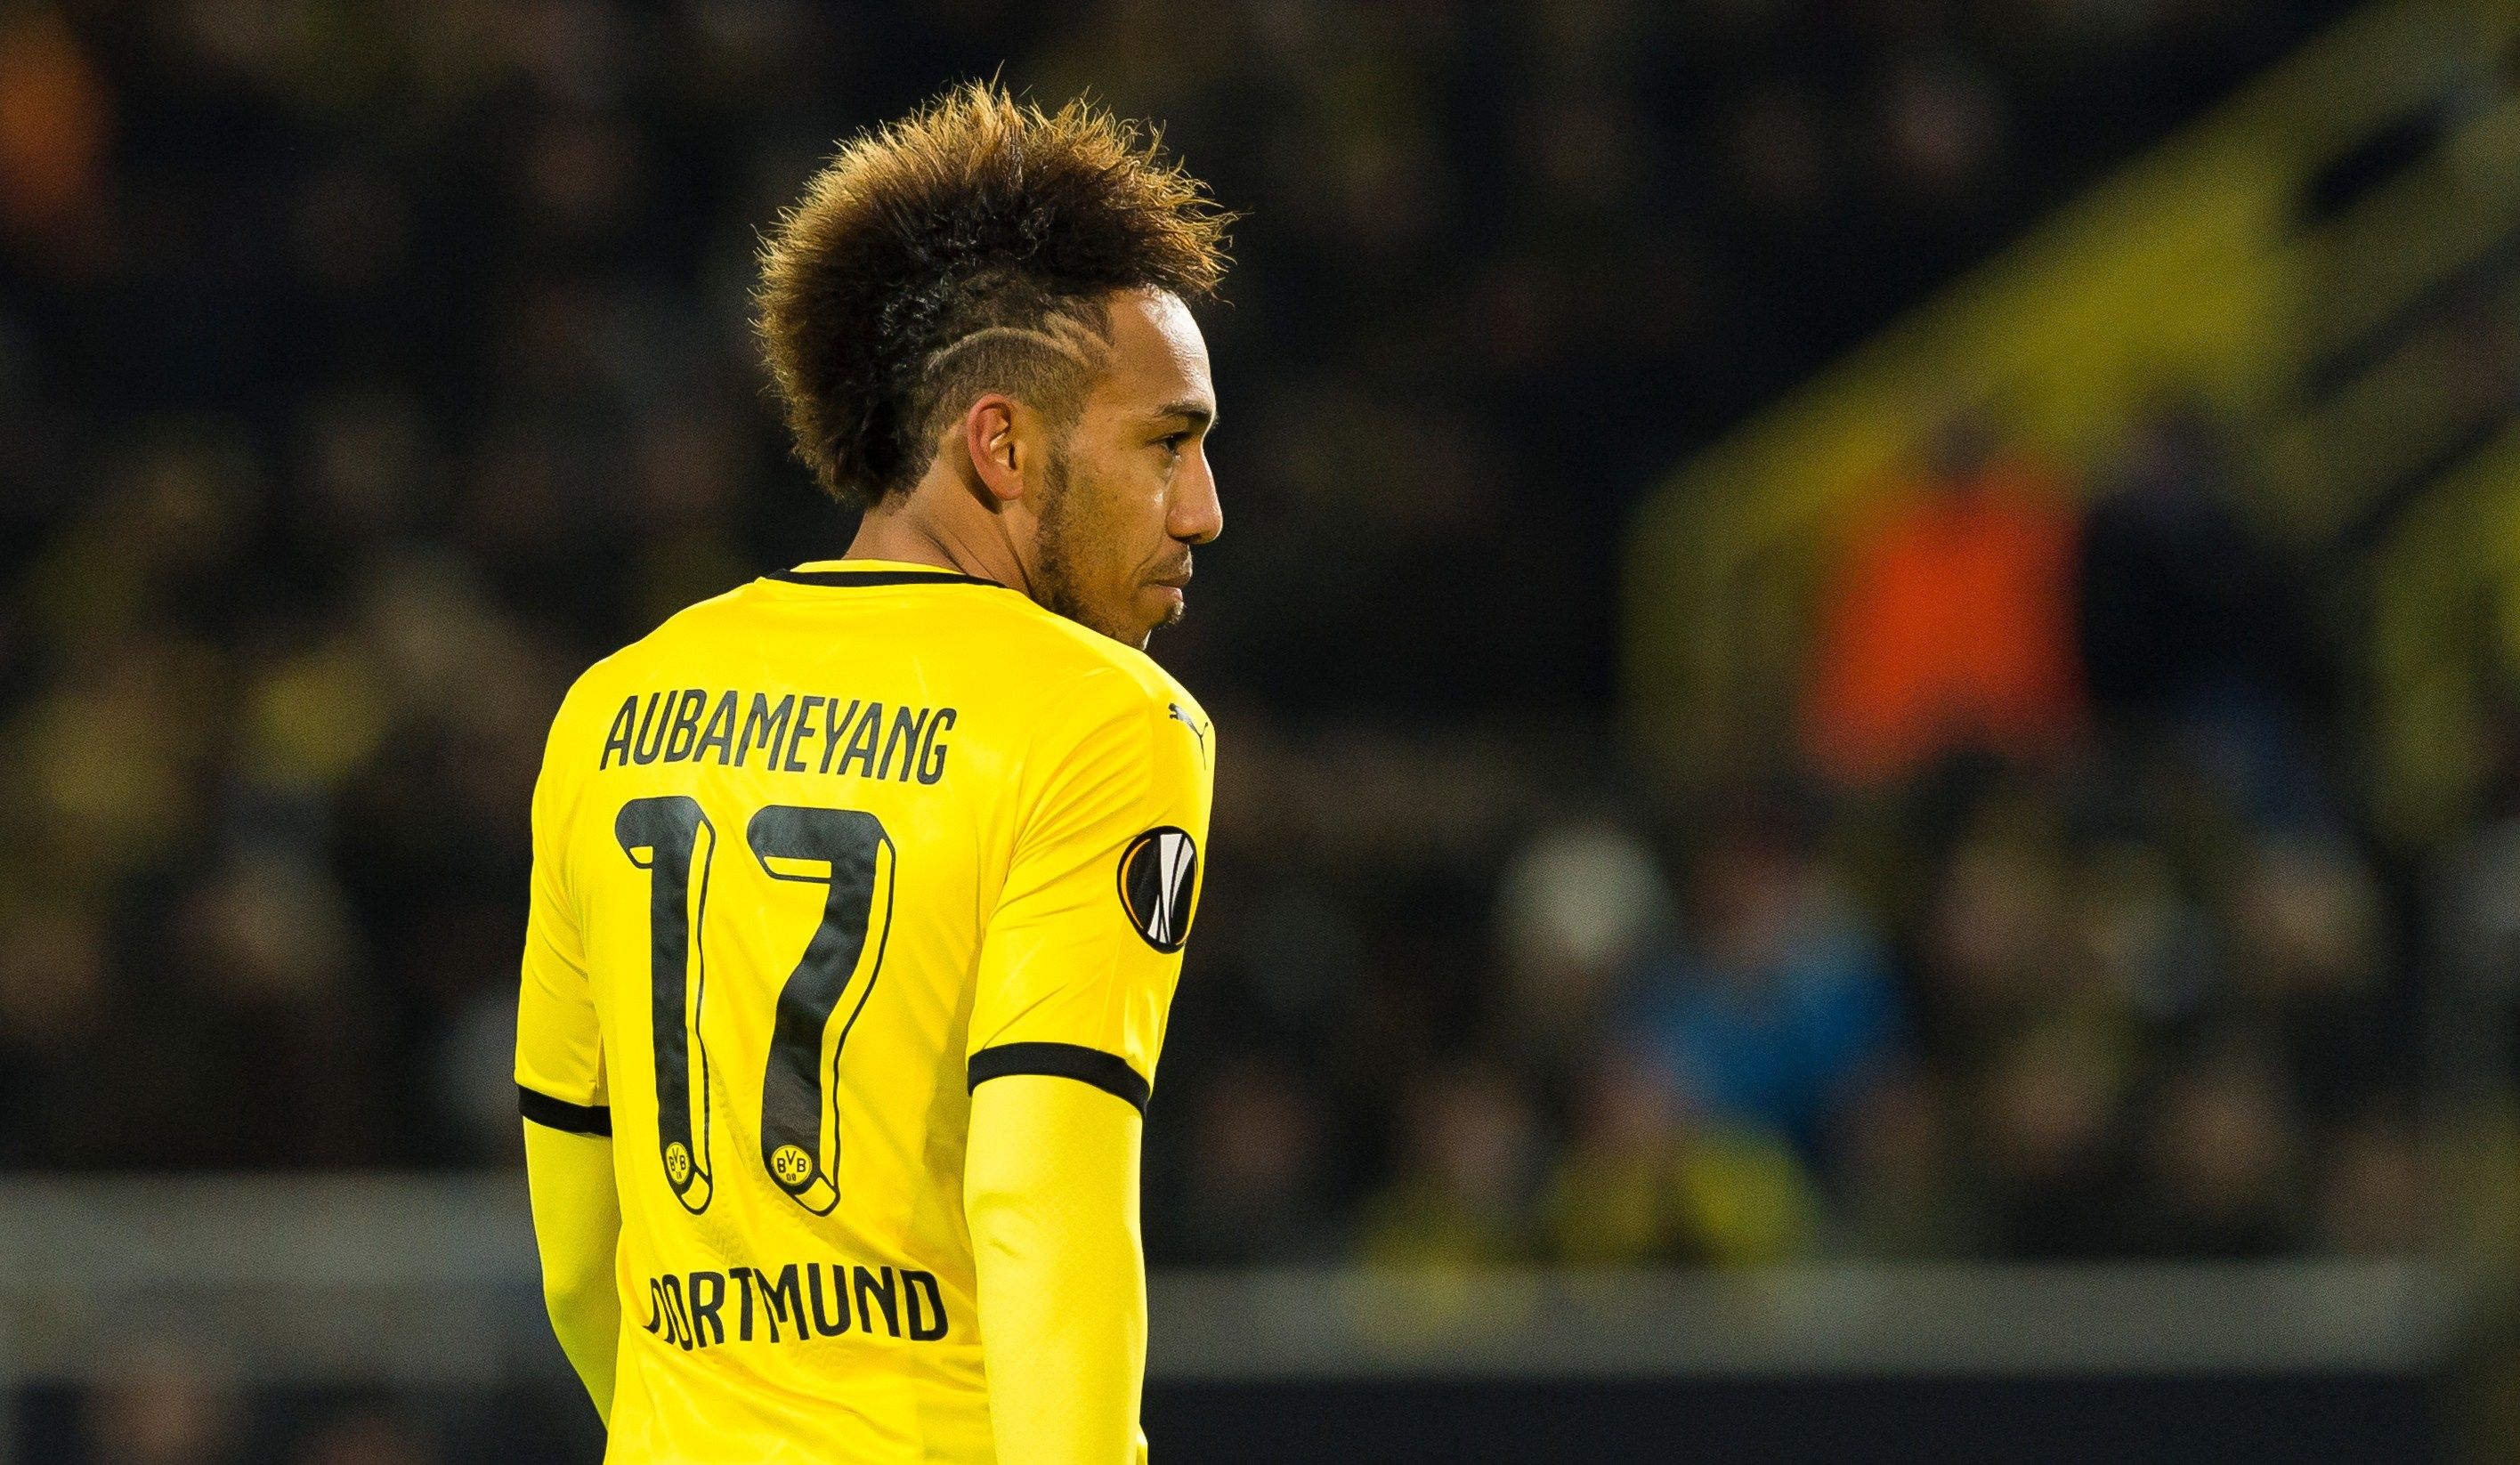 Aubameyang Picture: Pierre-Emerick Aubameyang Wallpapers